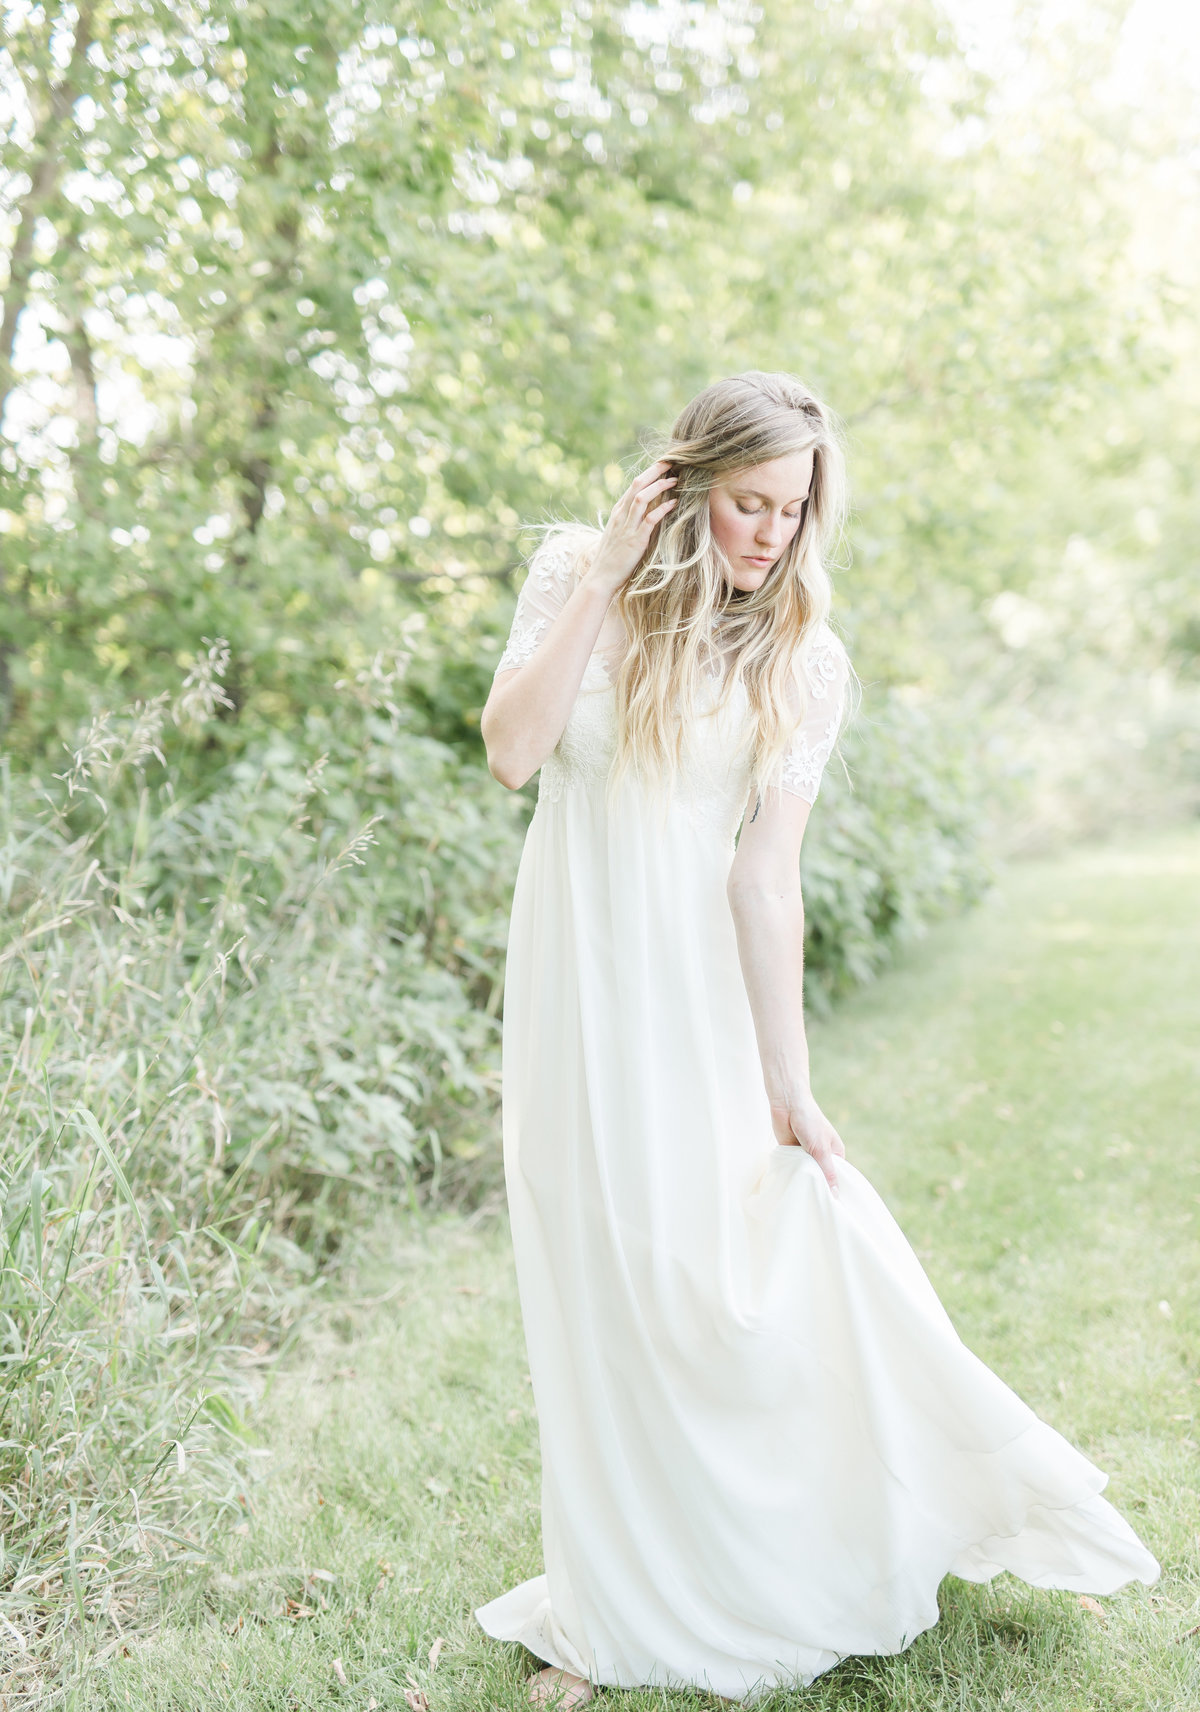 Kailey - Styled Shoot - New Edits-25